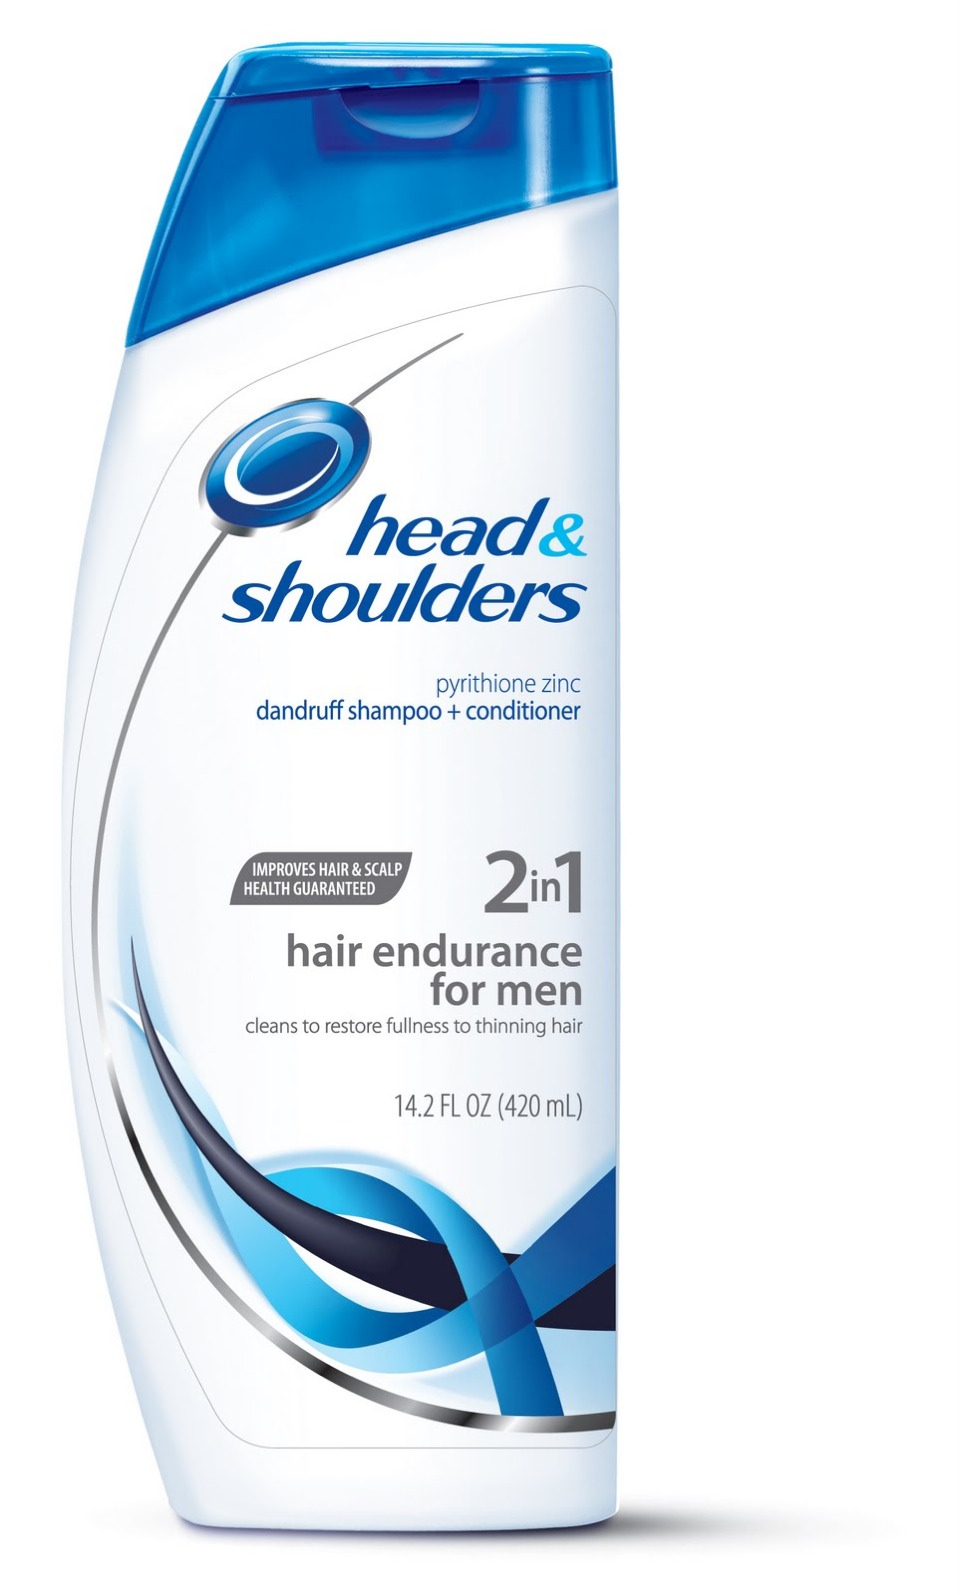 I use Head & Shoulders on my back acne! It actually works for me. Simply put it on your back acne and leave it there for 10 minutes and rinse it off. I do it everyday. You should start to see a difference after one or two weeks